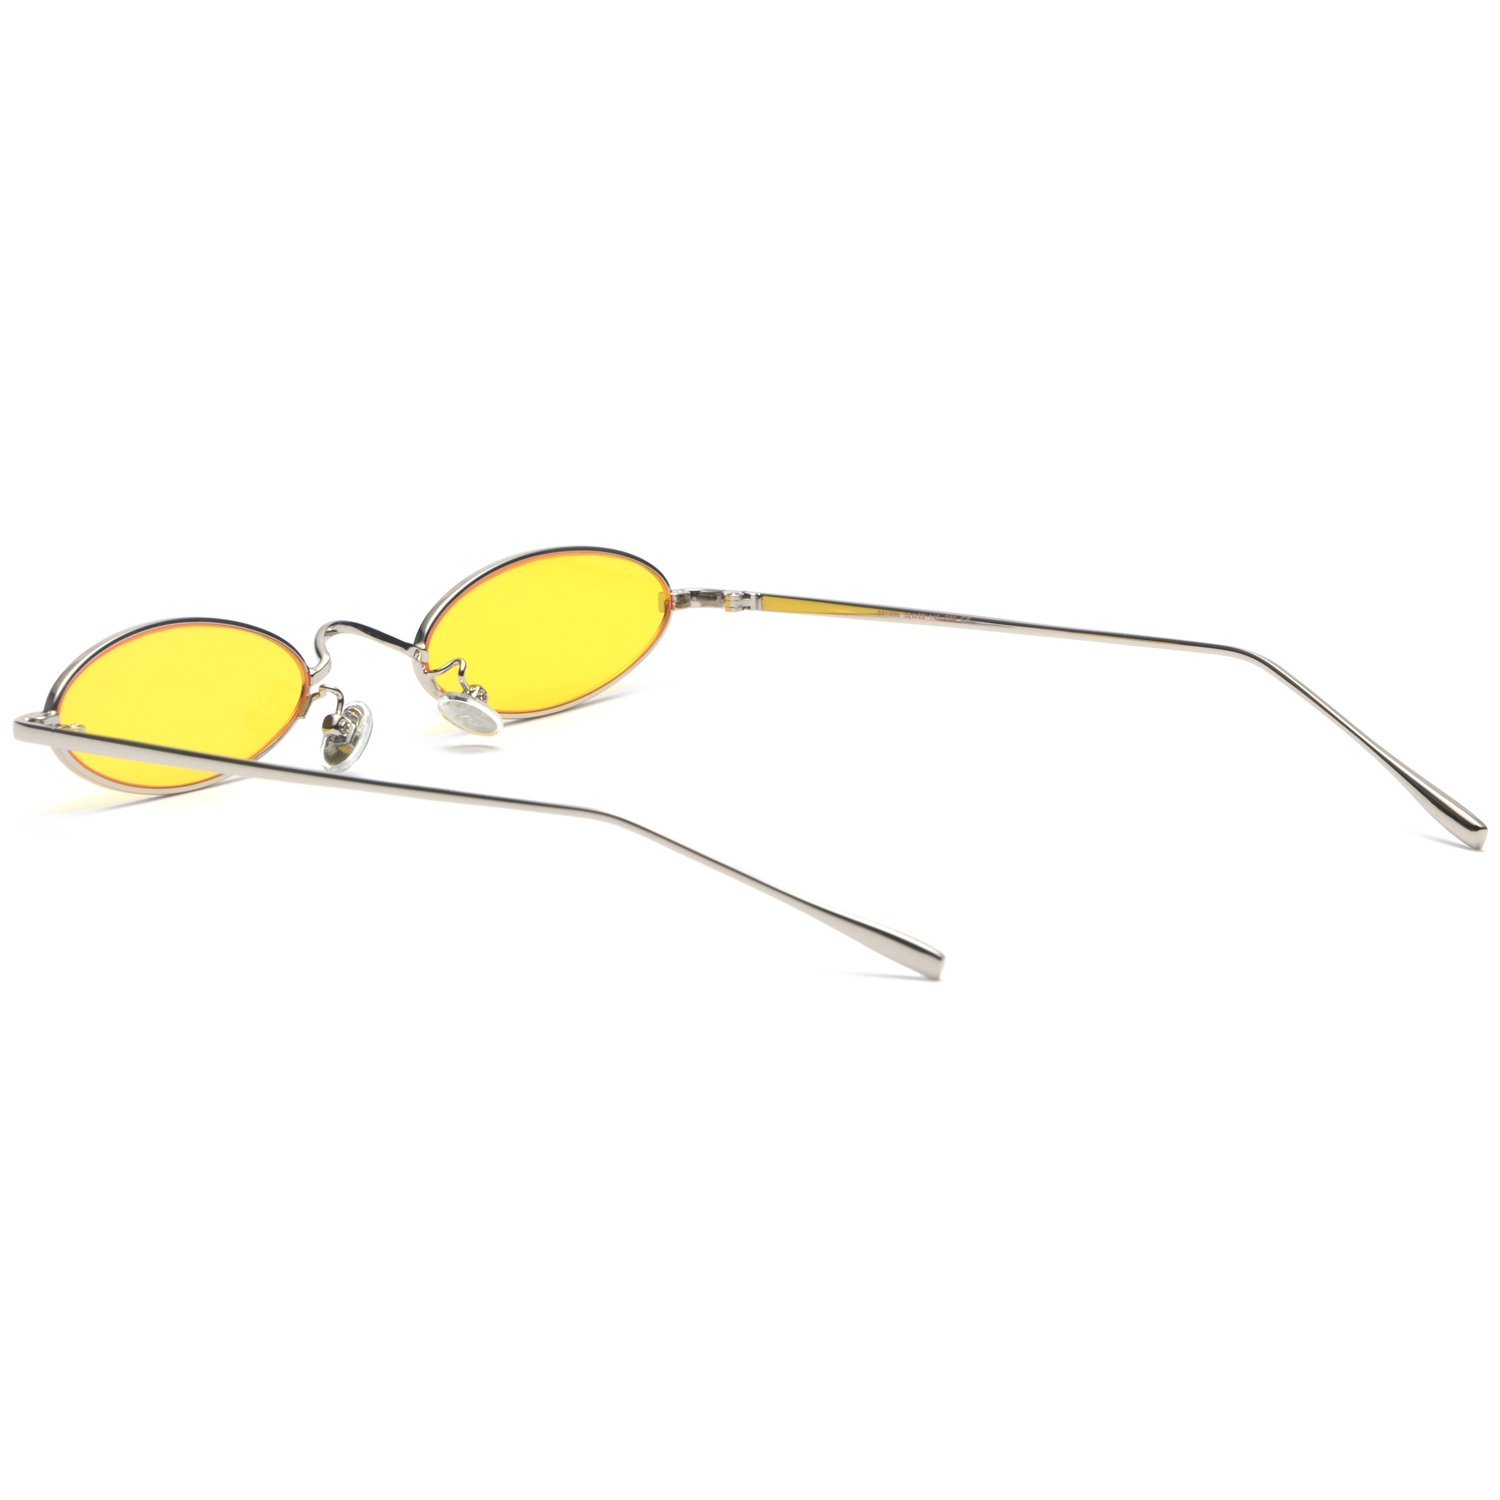 Vintage Cat Eye Sunglasses for Women Ultralight Metal Frame Retro Small Shades